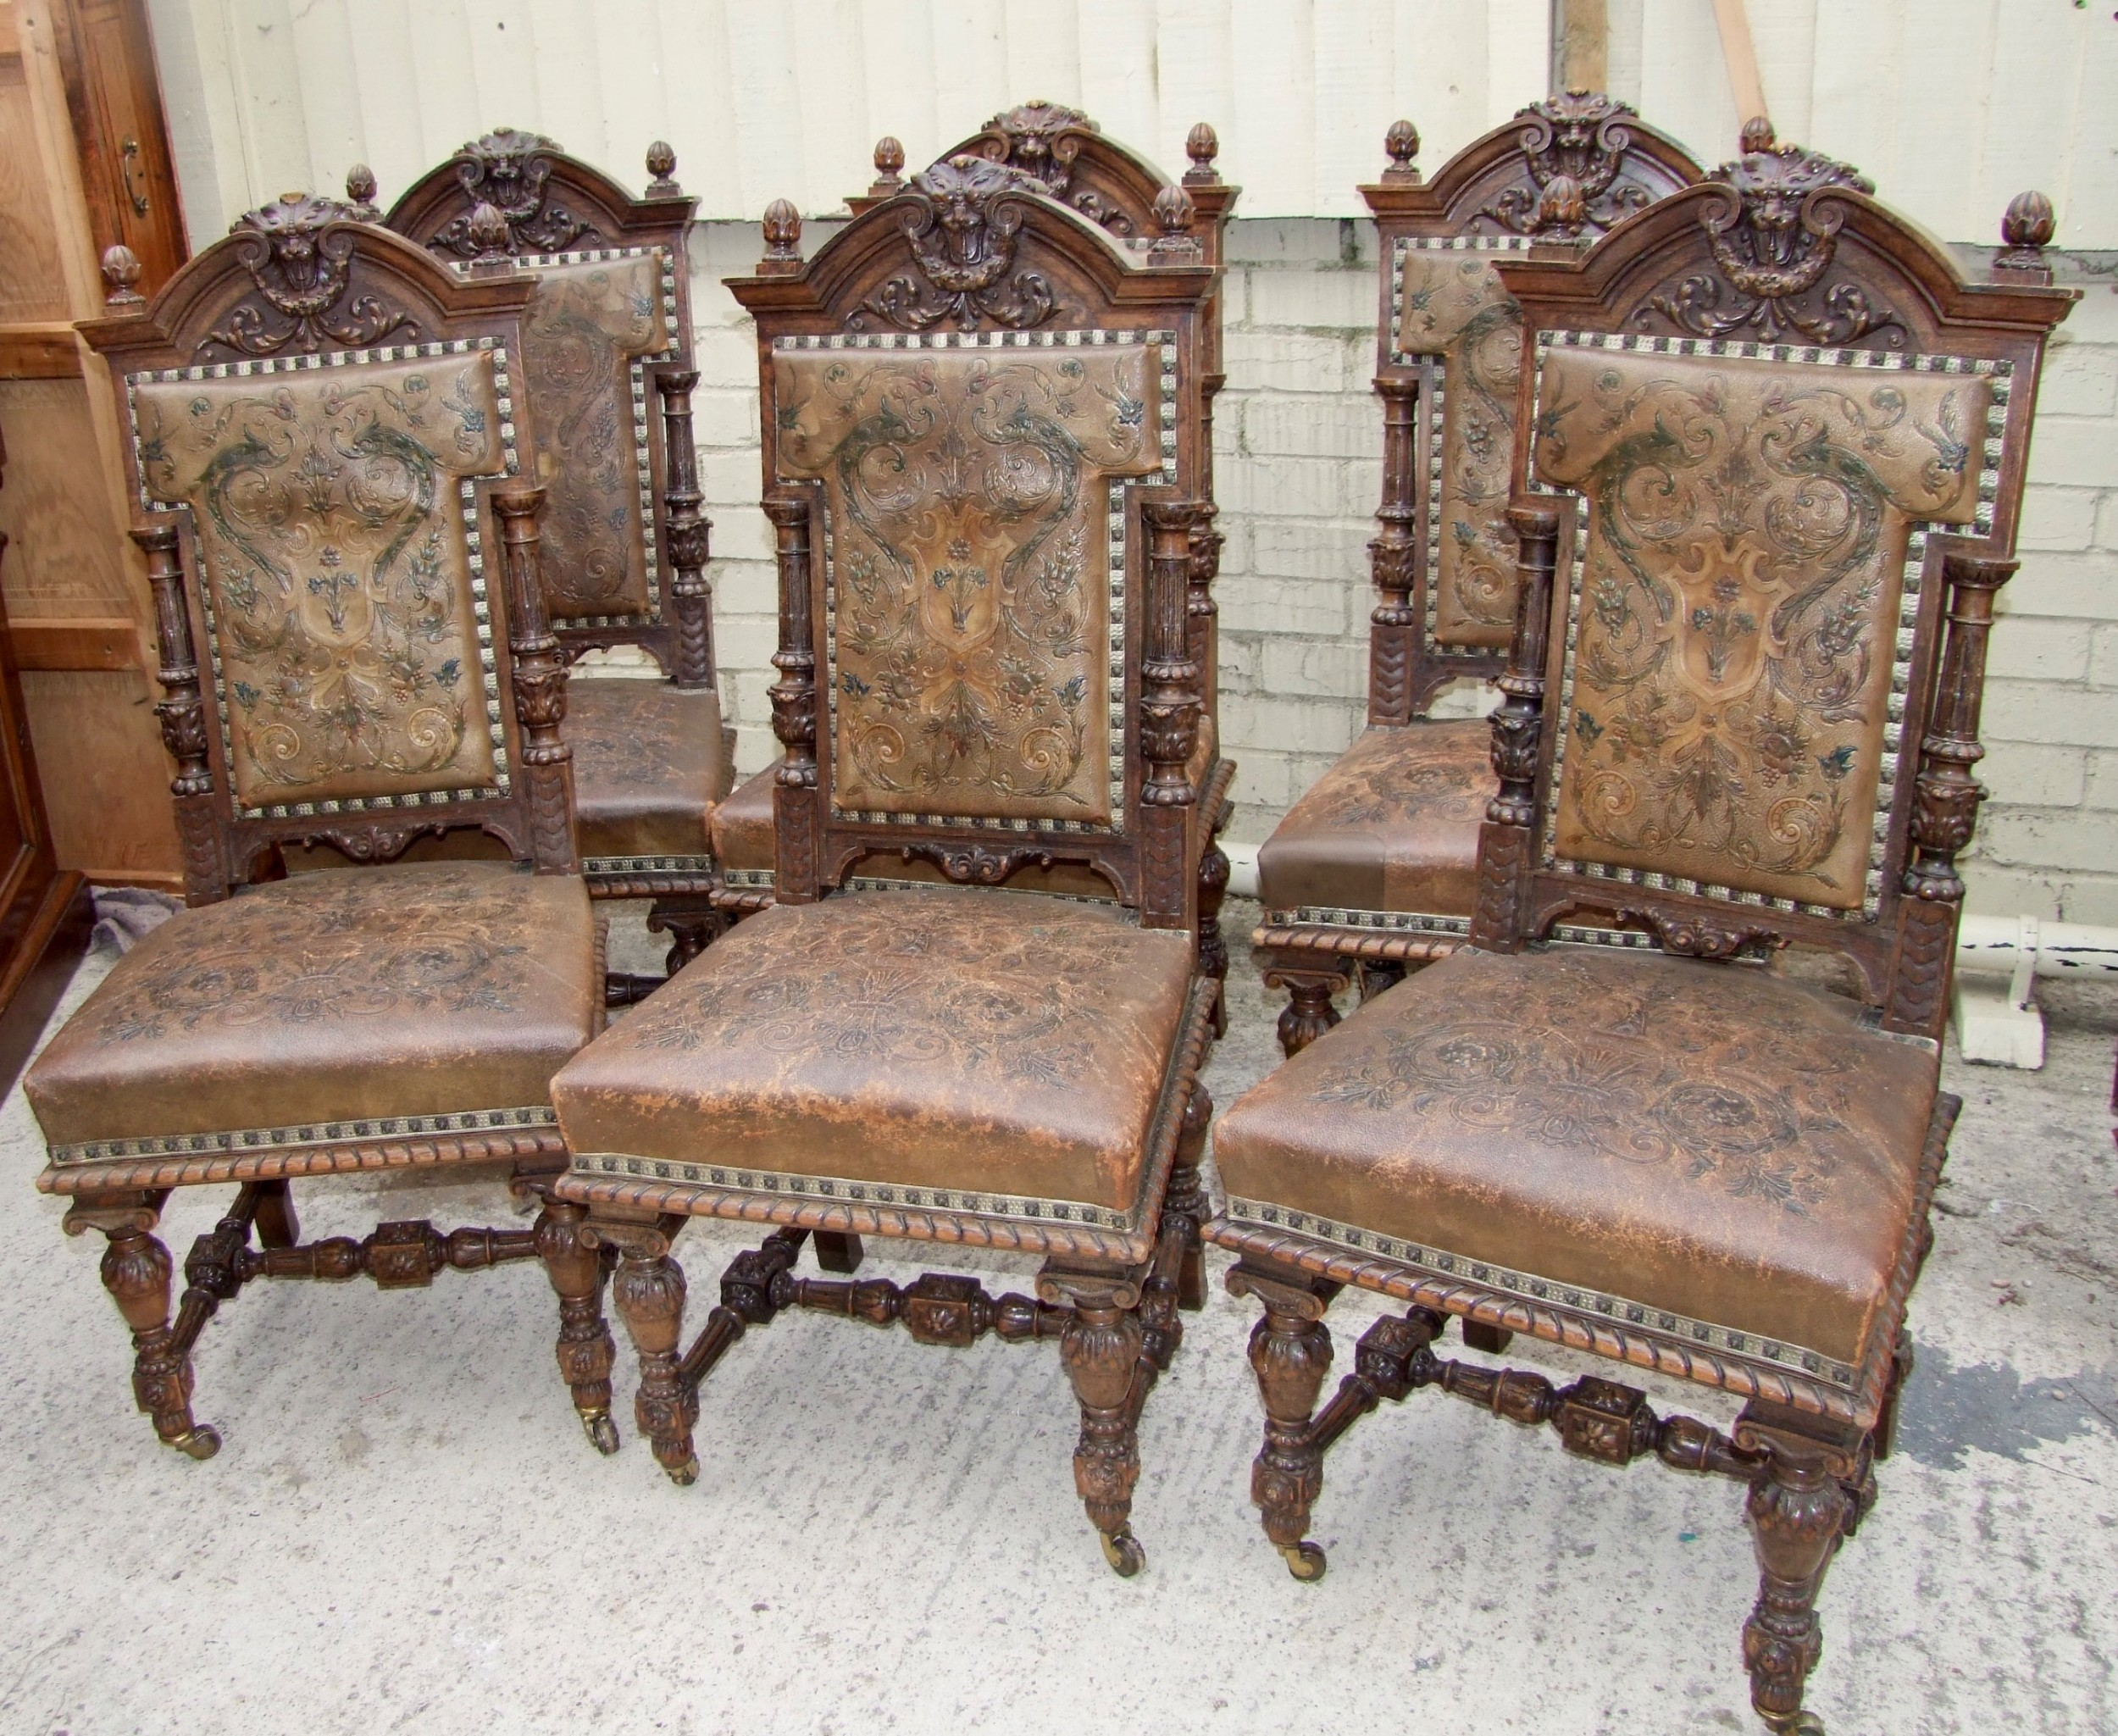 set of six 19th century carved baronial chairs with embossed leather